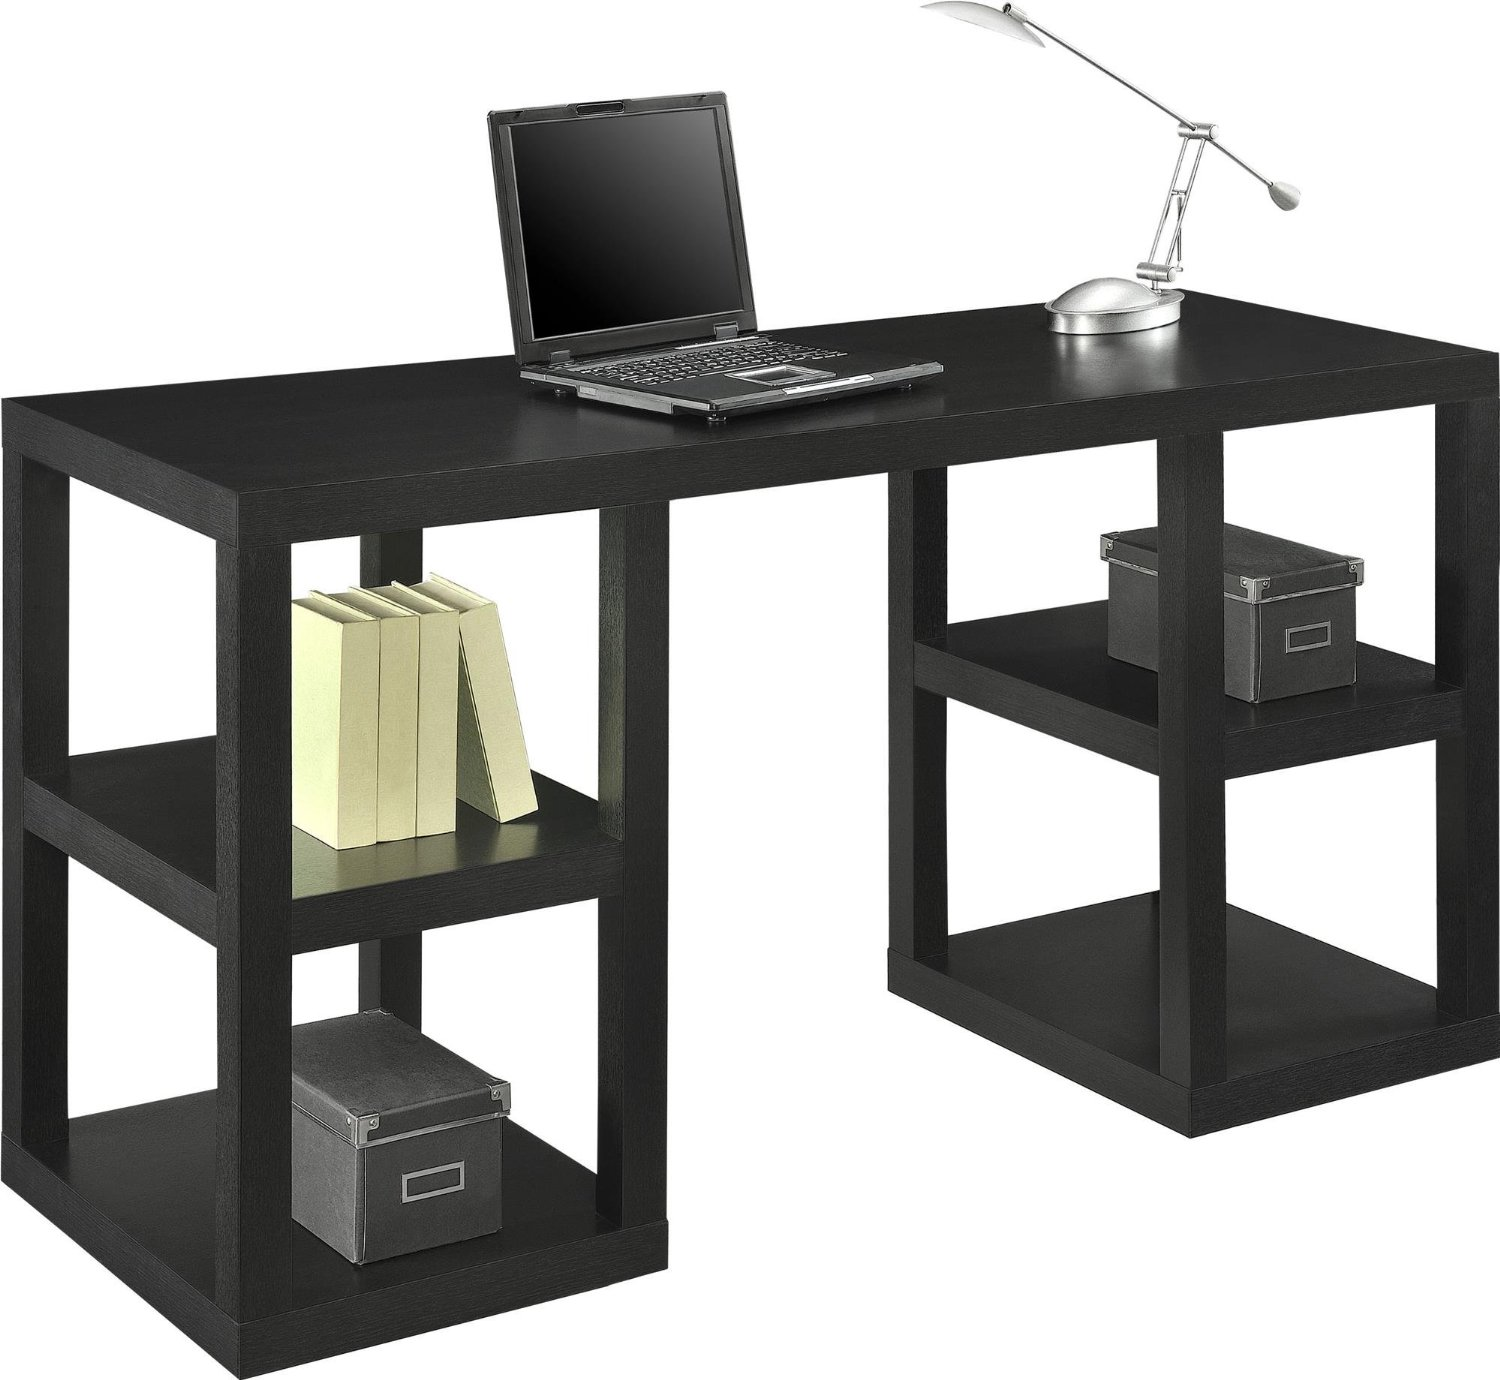 design awesome deks compter simple table furniture home computor desks for minimalist computers small your ideas computer office desk